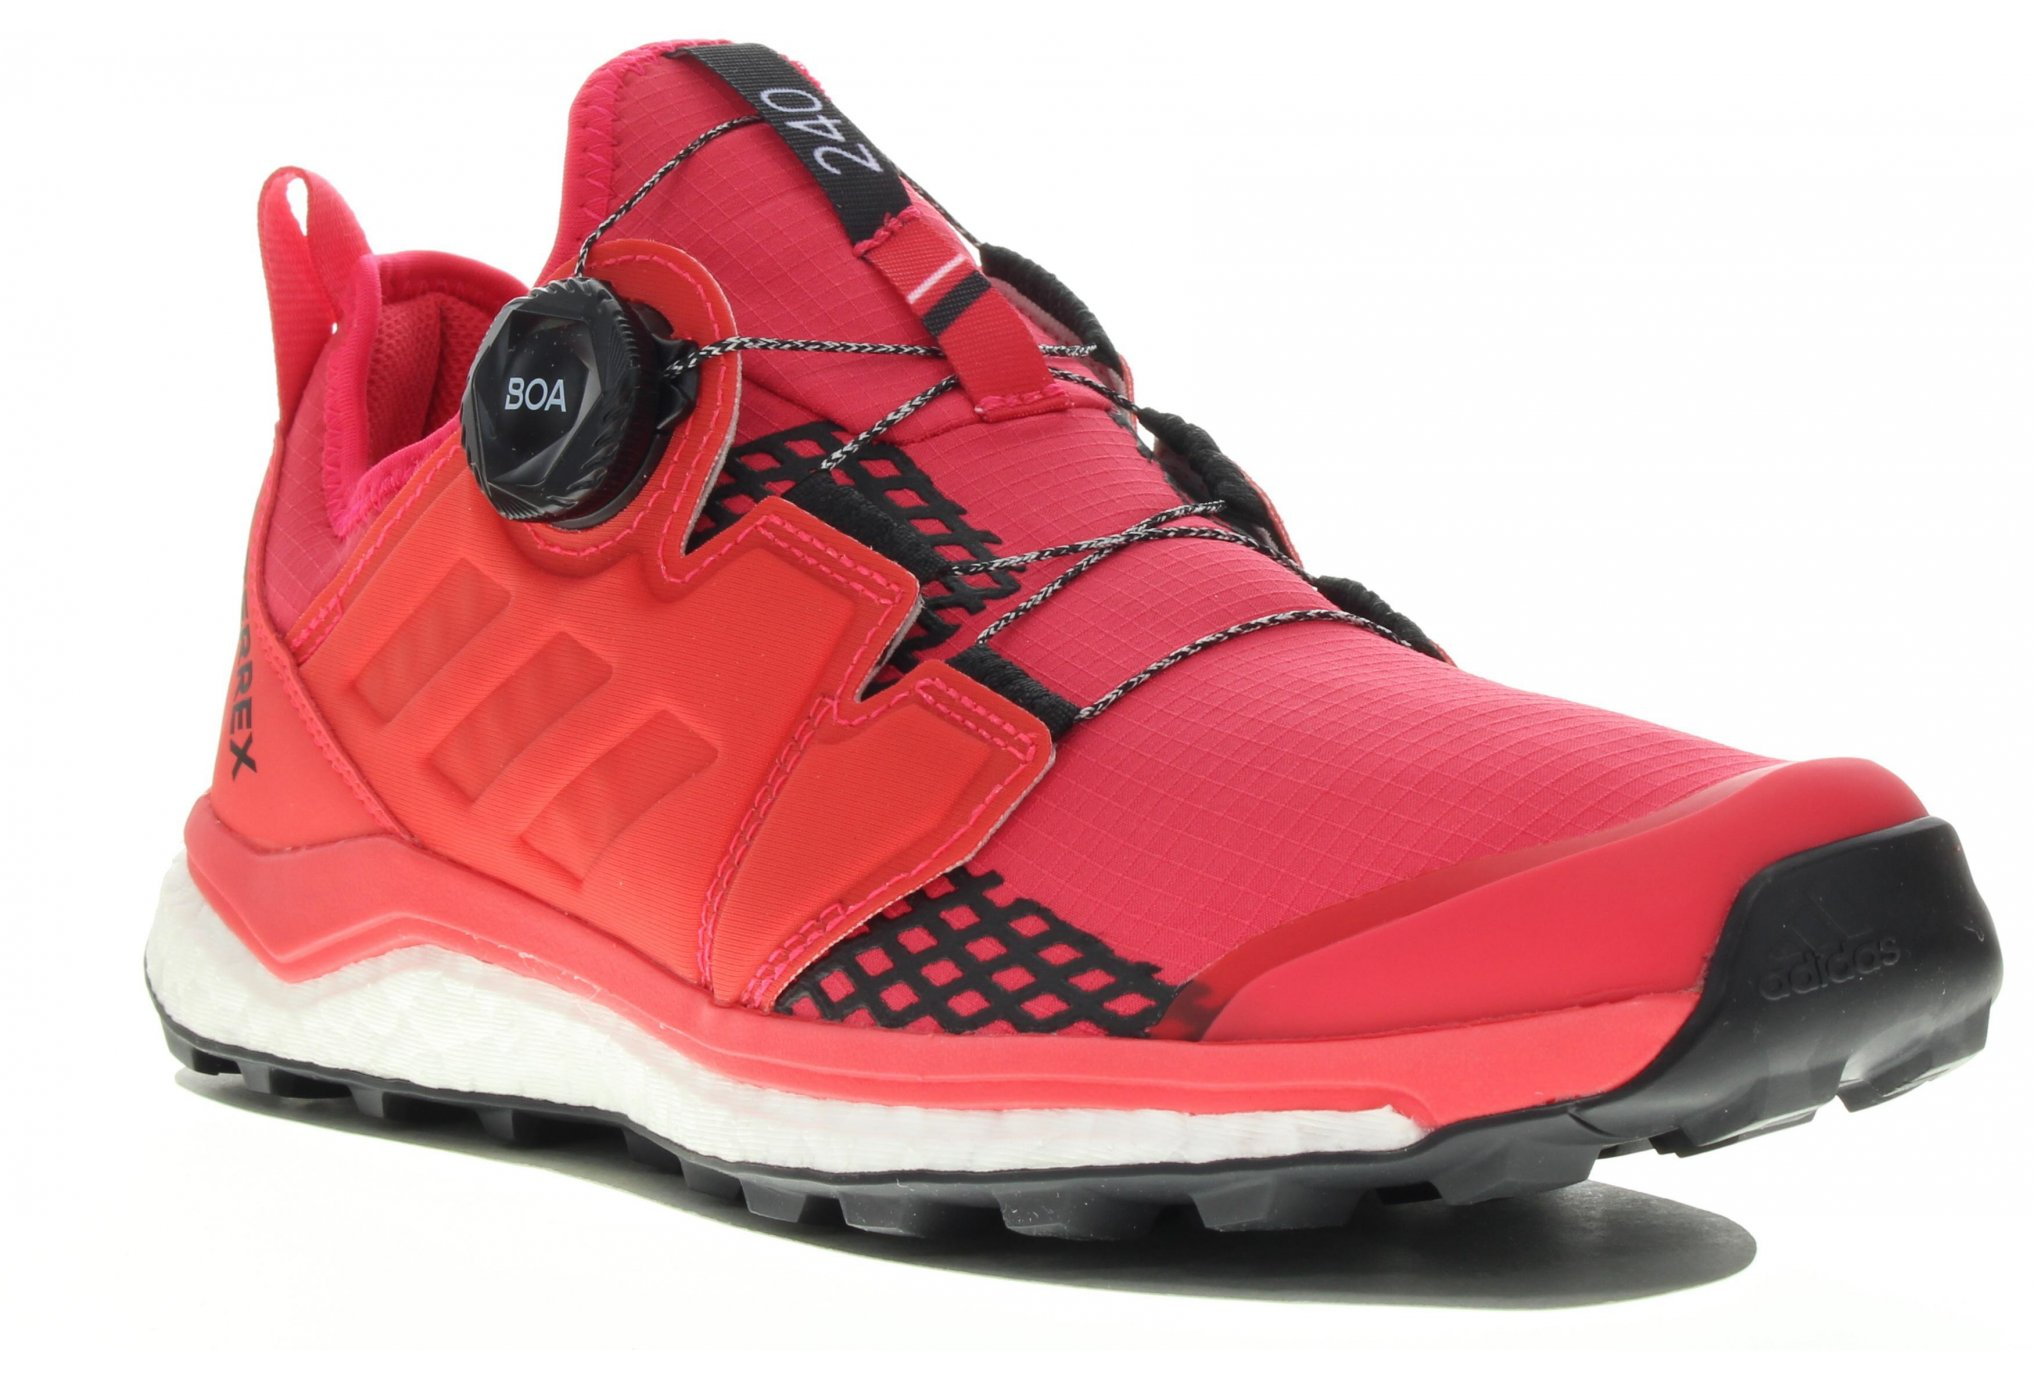 Adidas Terrex agravic boa w chaussures running femme